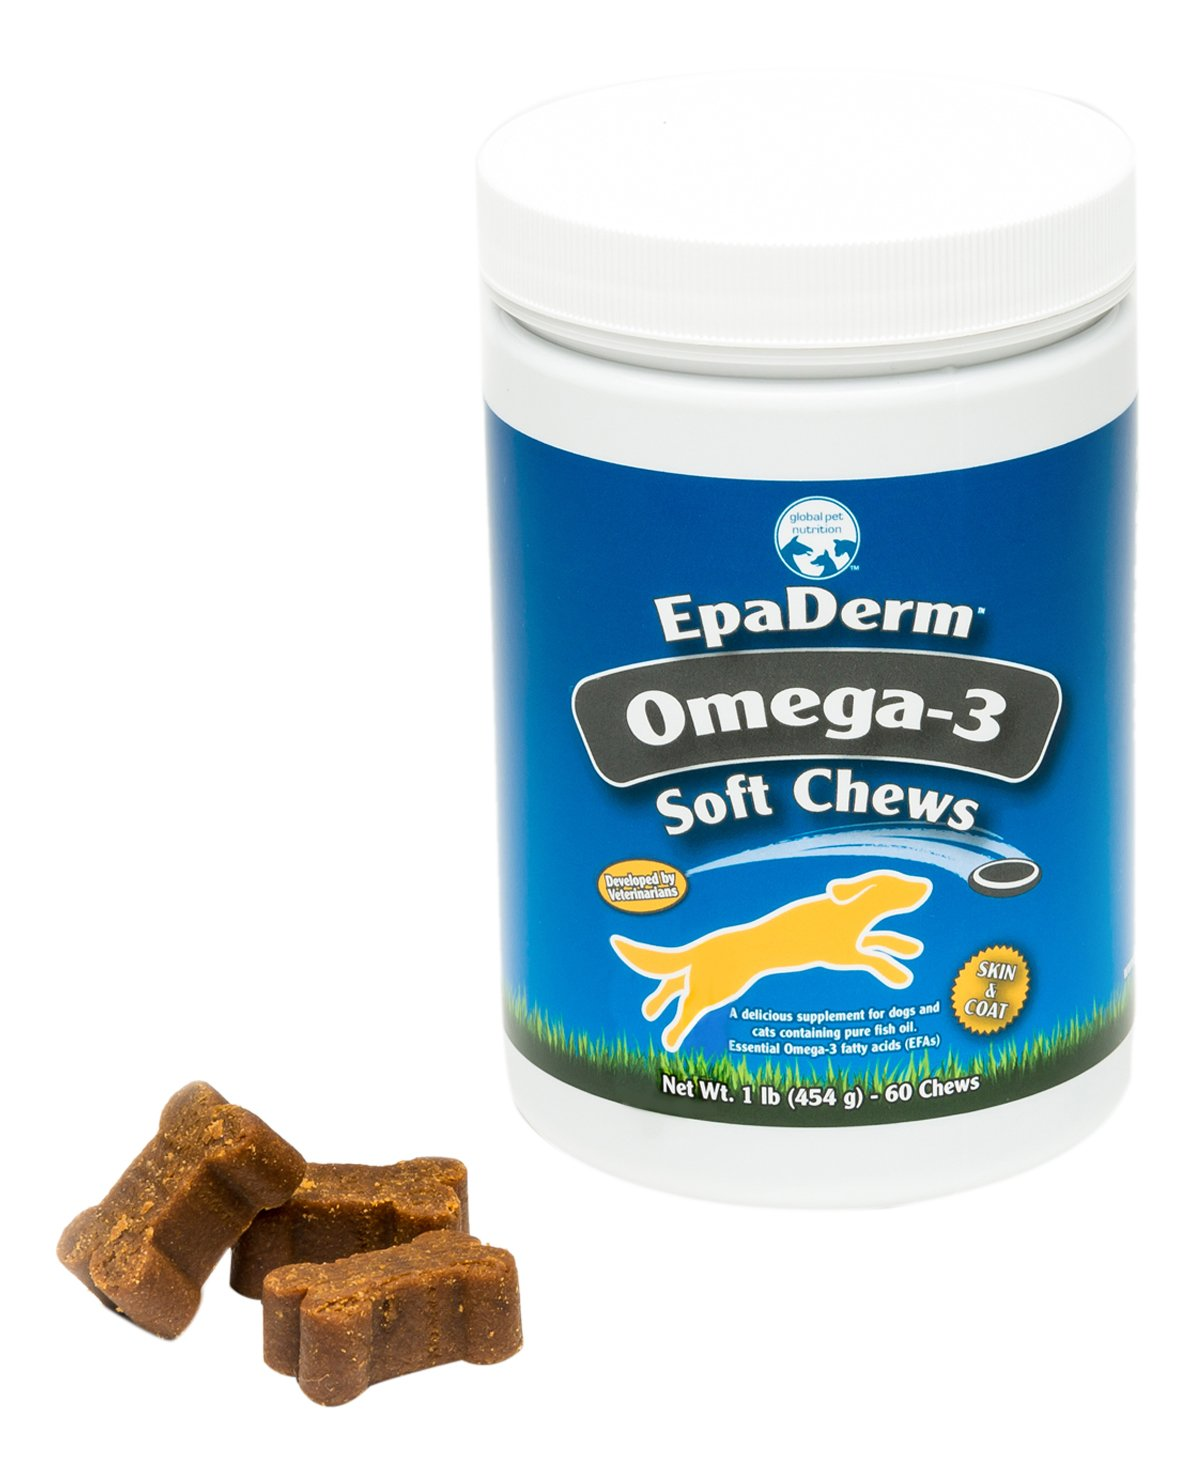 Omega 3 Soft Chews for Dogs & Cats- 1 Pound of Highly Concentrated Soft Chews- GREAT VALUE. Excellent for Skin & Coat- Reduce Shedding & Itching